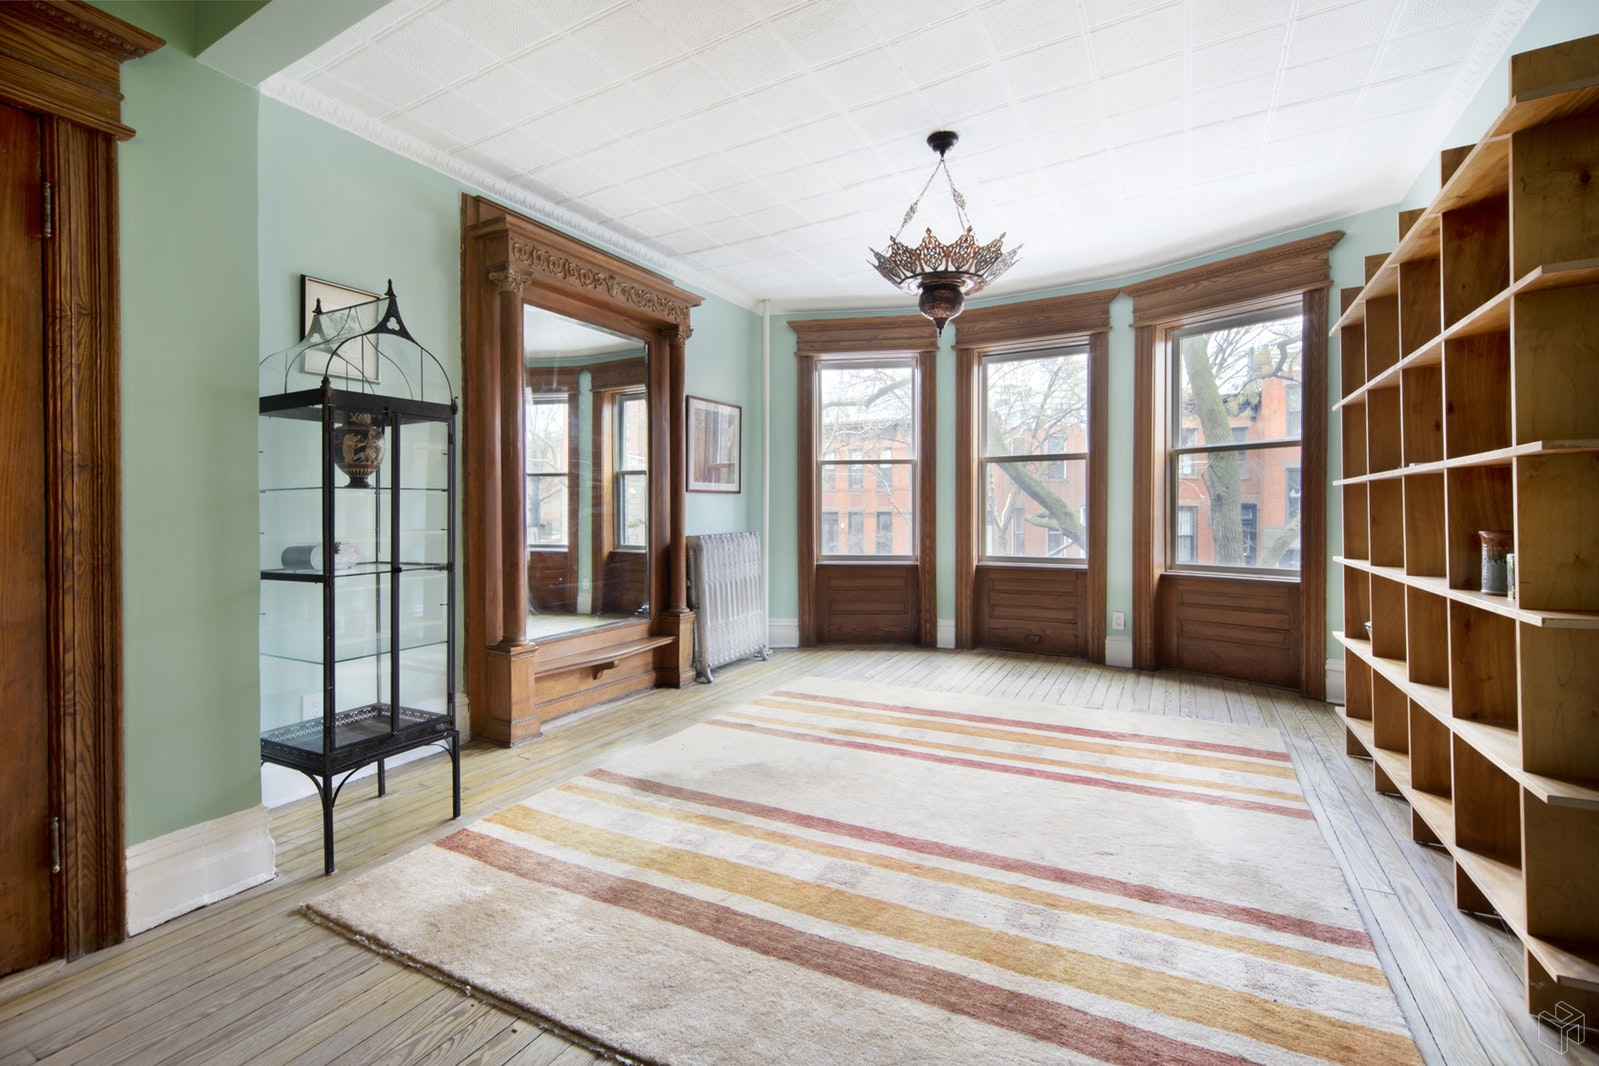 404 6th Avenue 2r, Park Slope, Brooklyn, NY, 11215, $1,199,000, Property For Sale, Halstead Real Estate, Photo 2